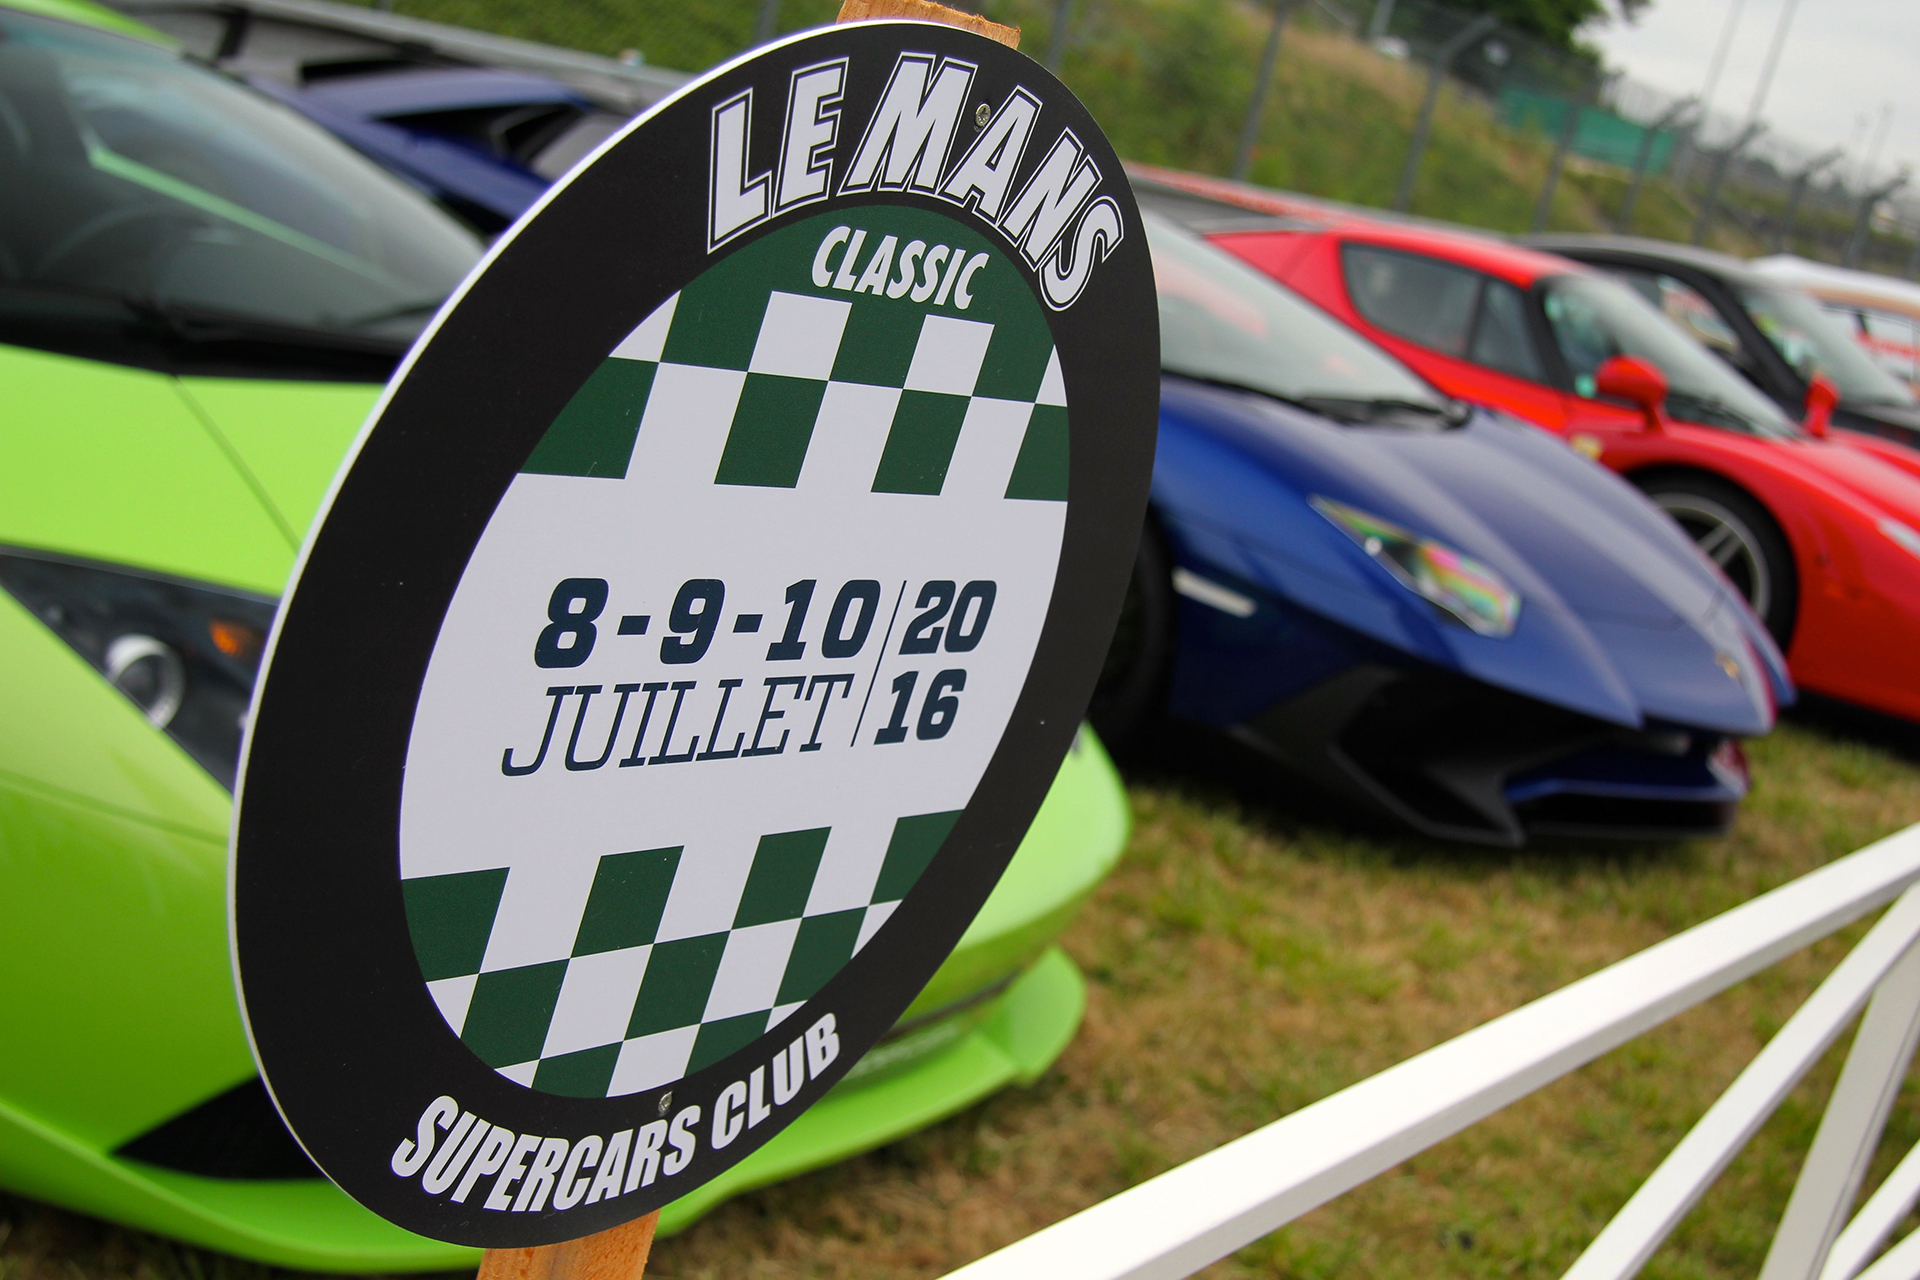 Panneau Supercars Club - Le Mans Classic 2016 - photo Ludo Ferrari